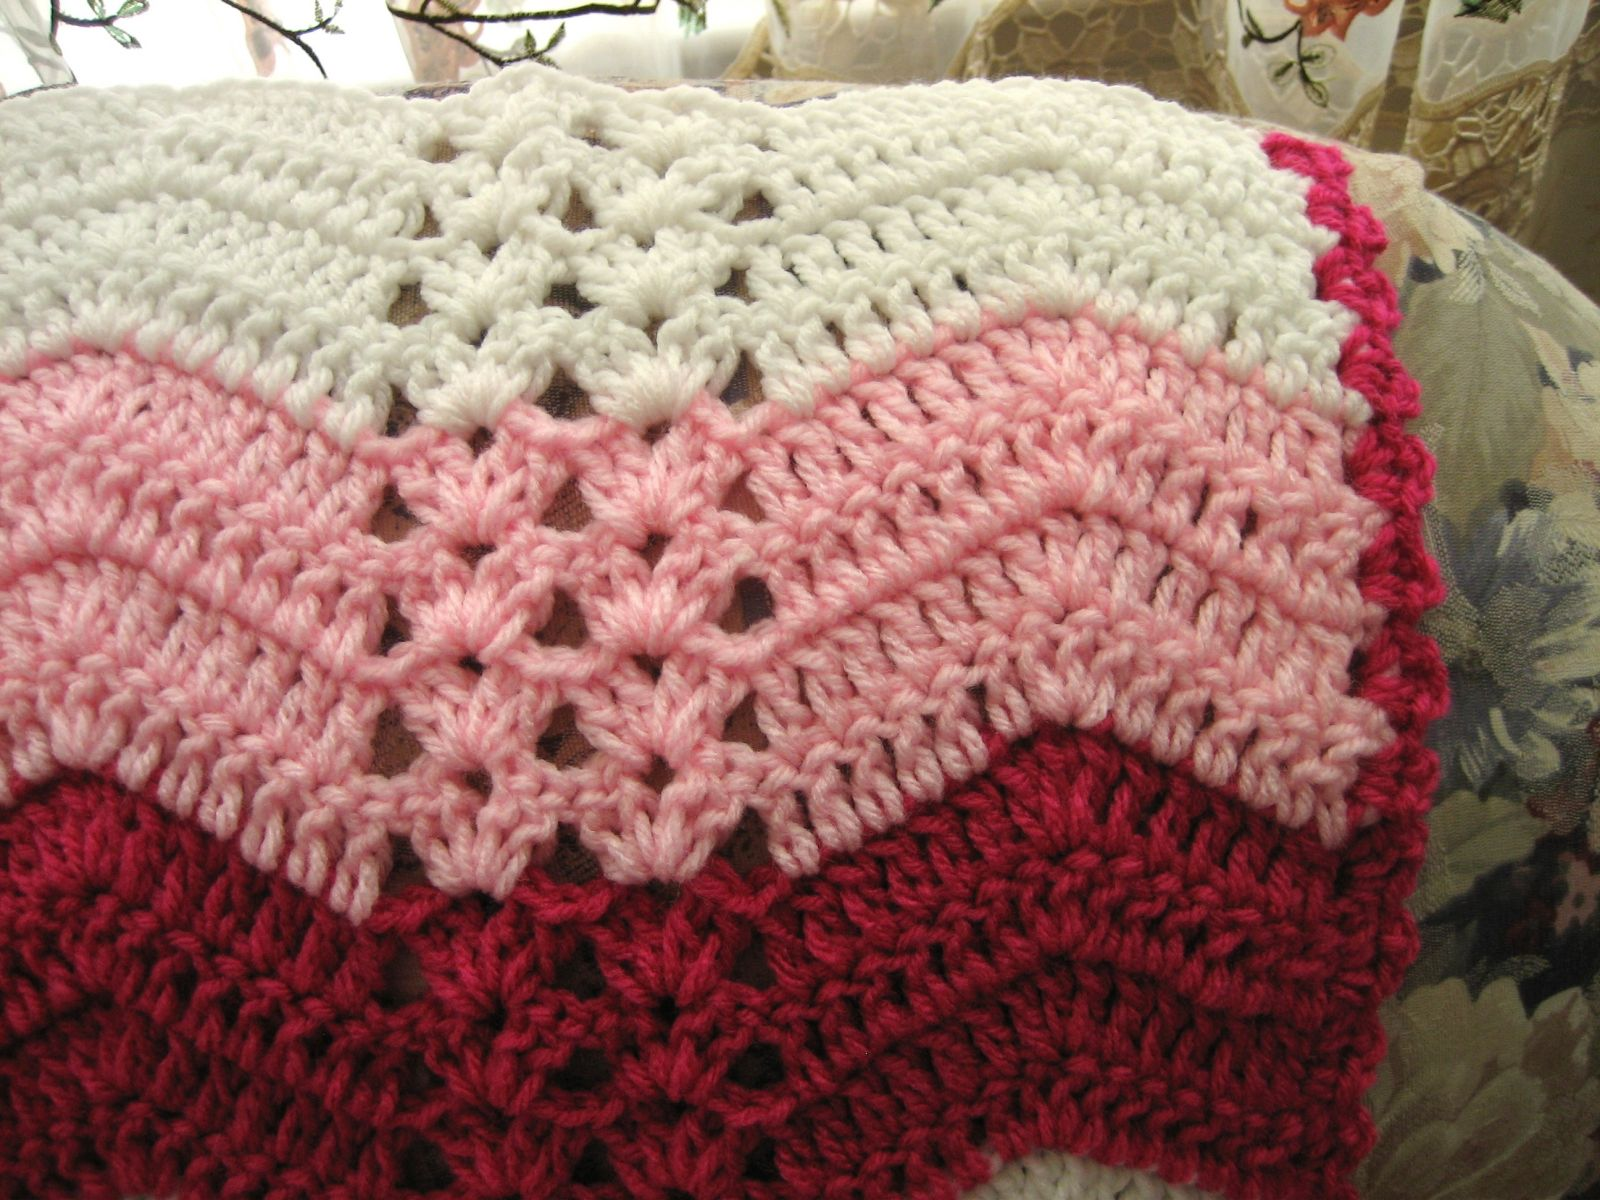 Free Crochet Stitches : Afghans Free Crochet Afghan Patterns Afghan Hearts Afghan Angel Afghan ...